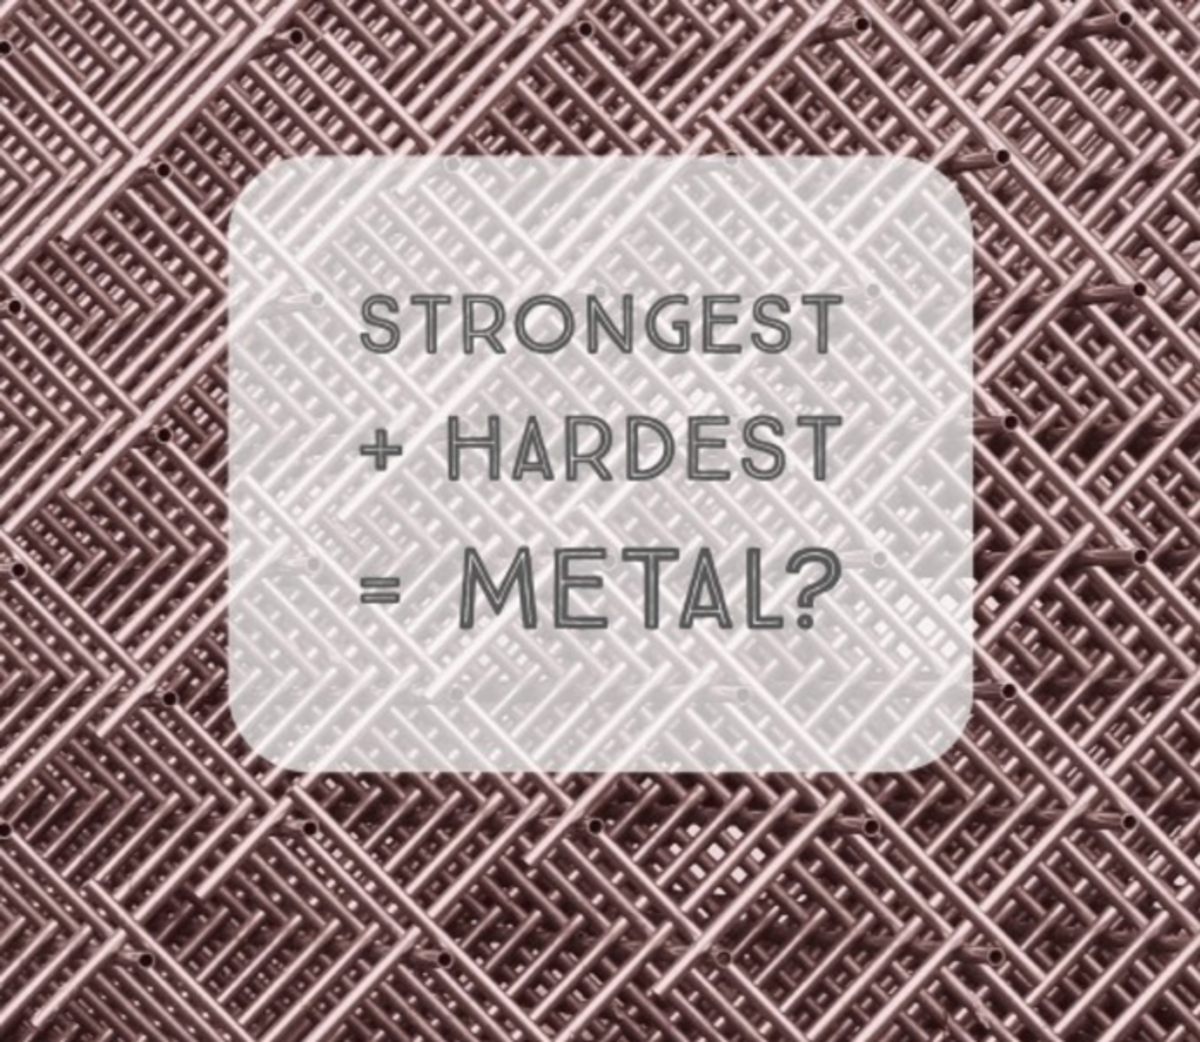 What Are the Strongest & Hardest Metals Known to Mankind?